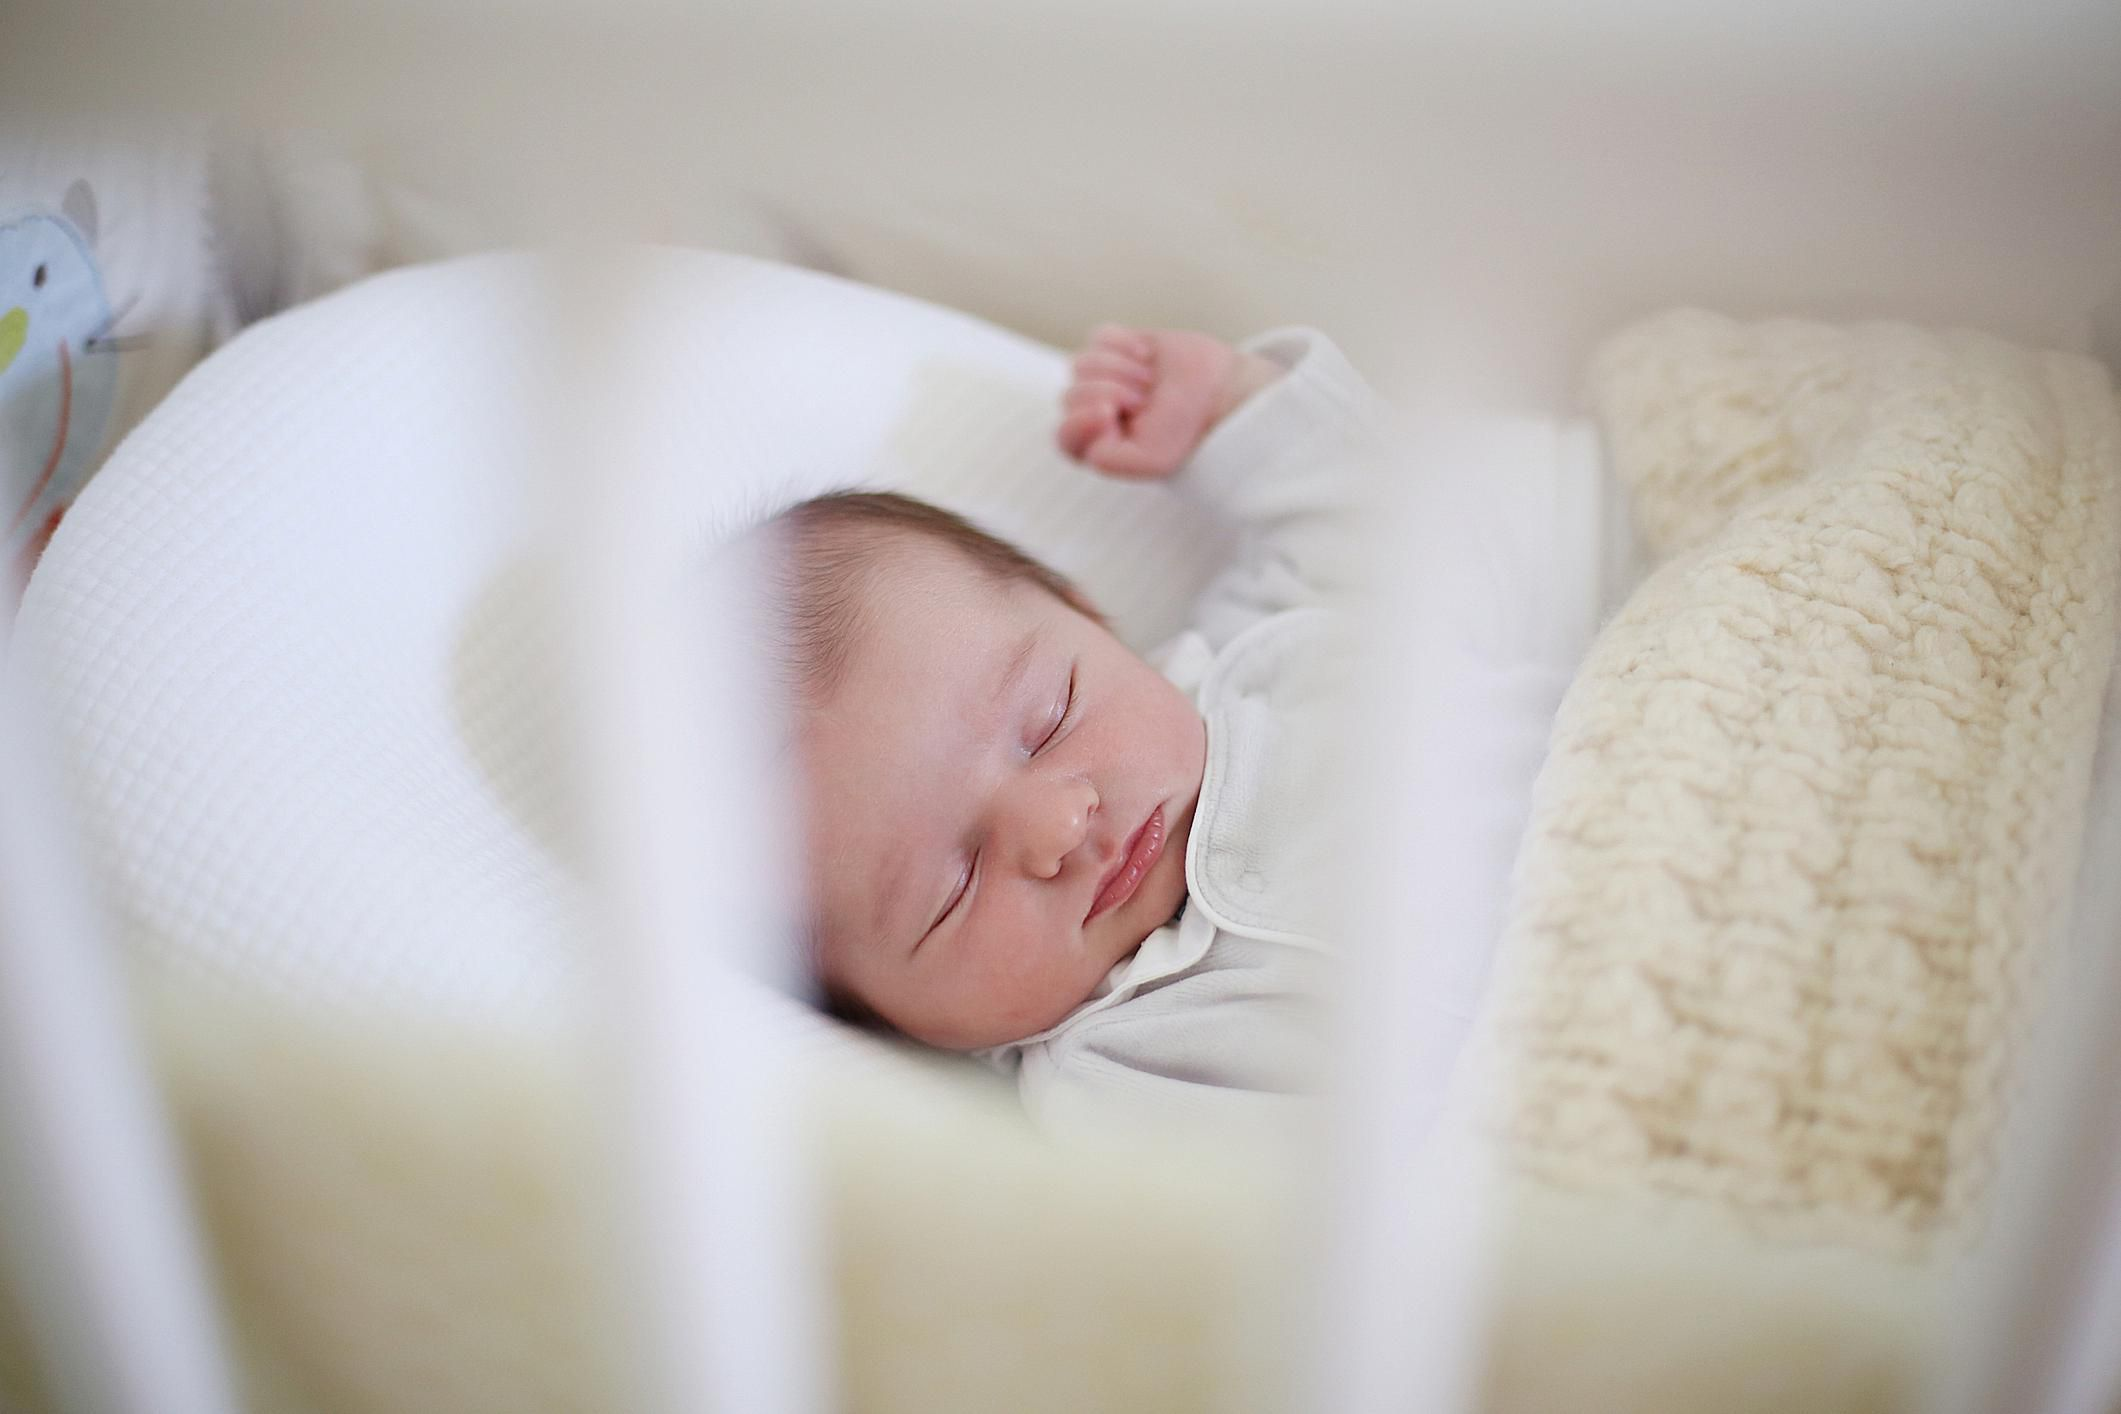 Infant Sleep Positioners A Safety Warning